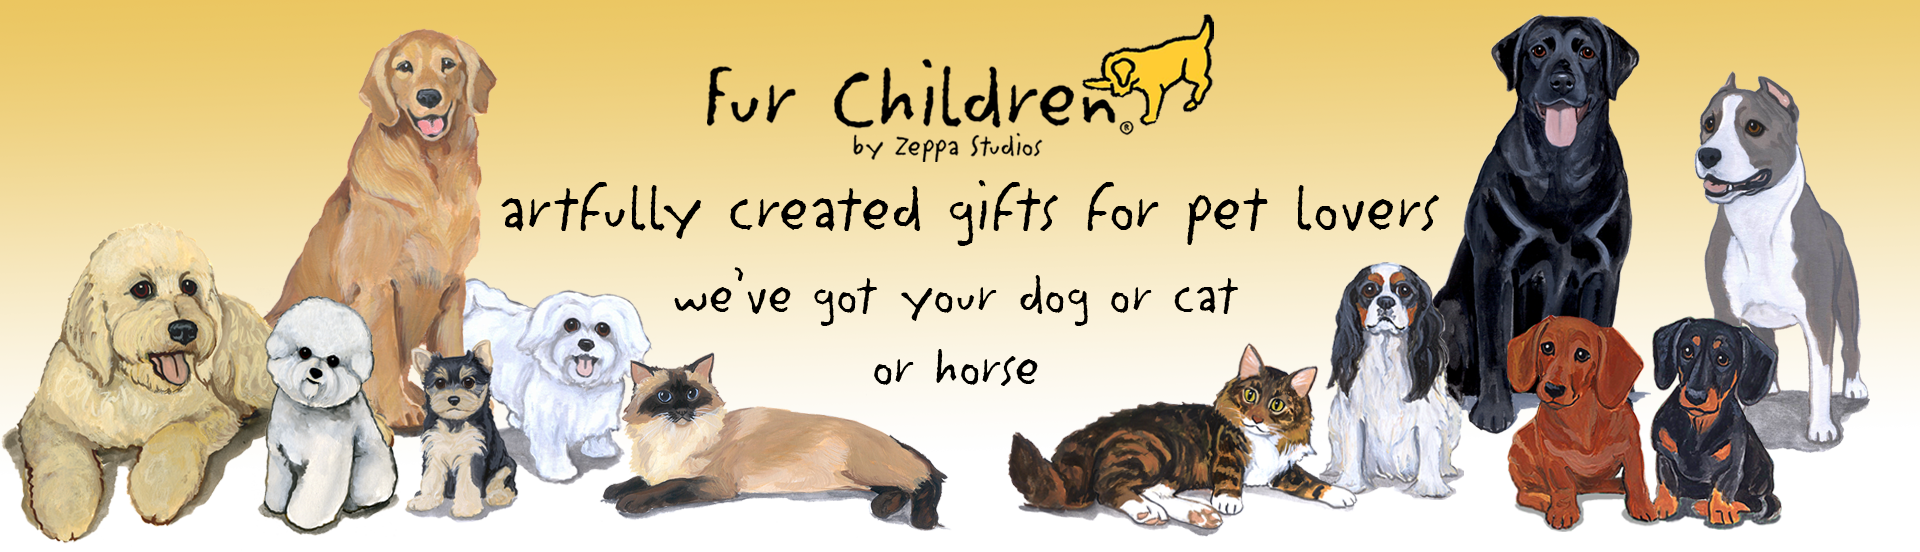 artfully created gifts for pet lovers - Fur Children by Zeppa Studios